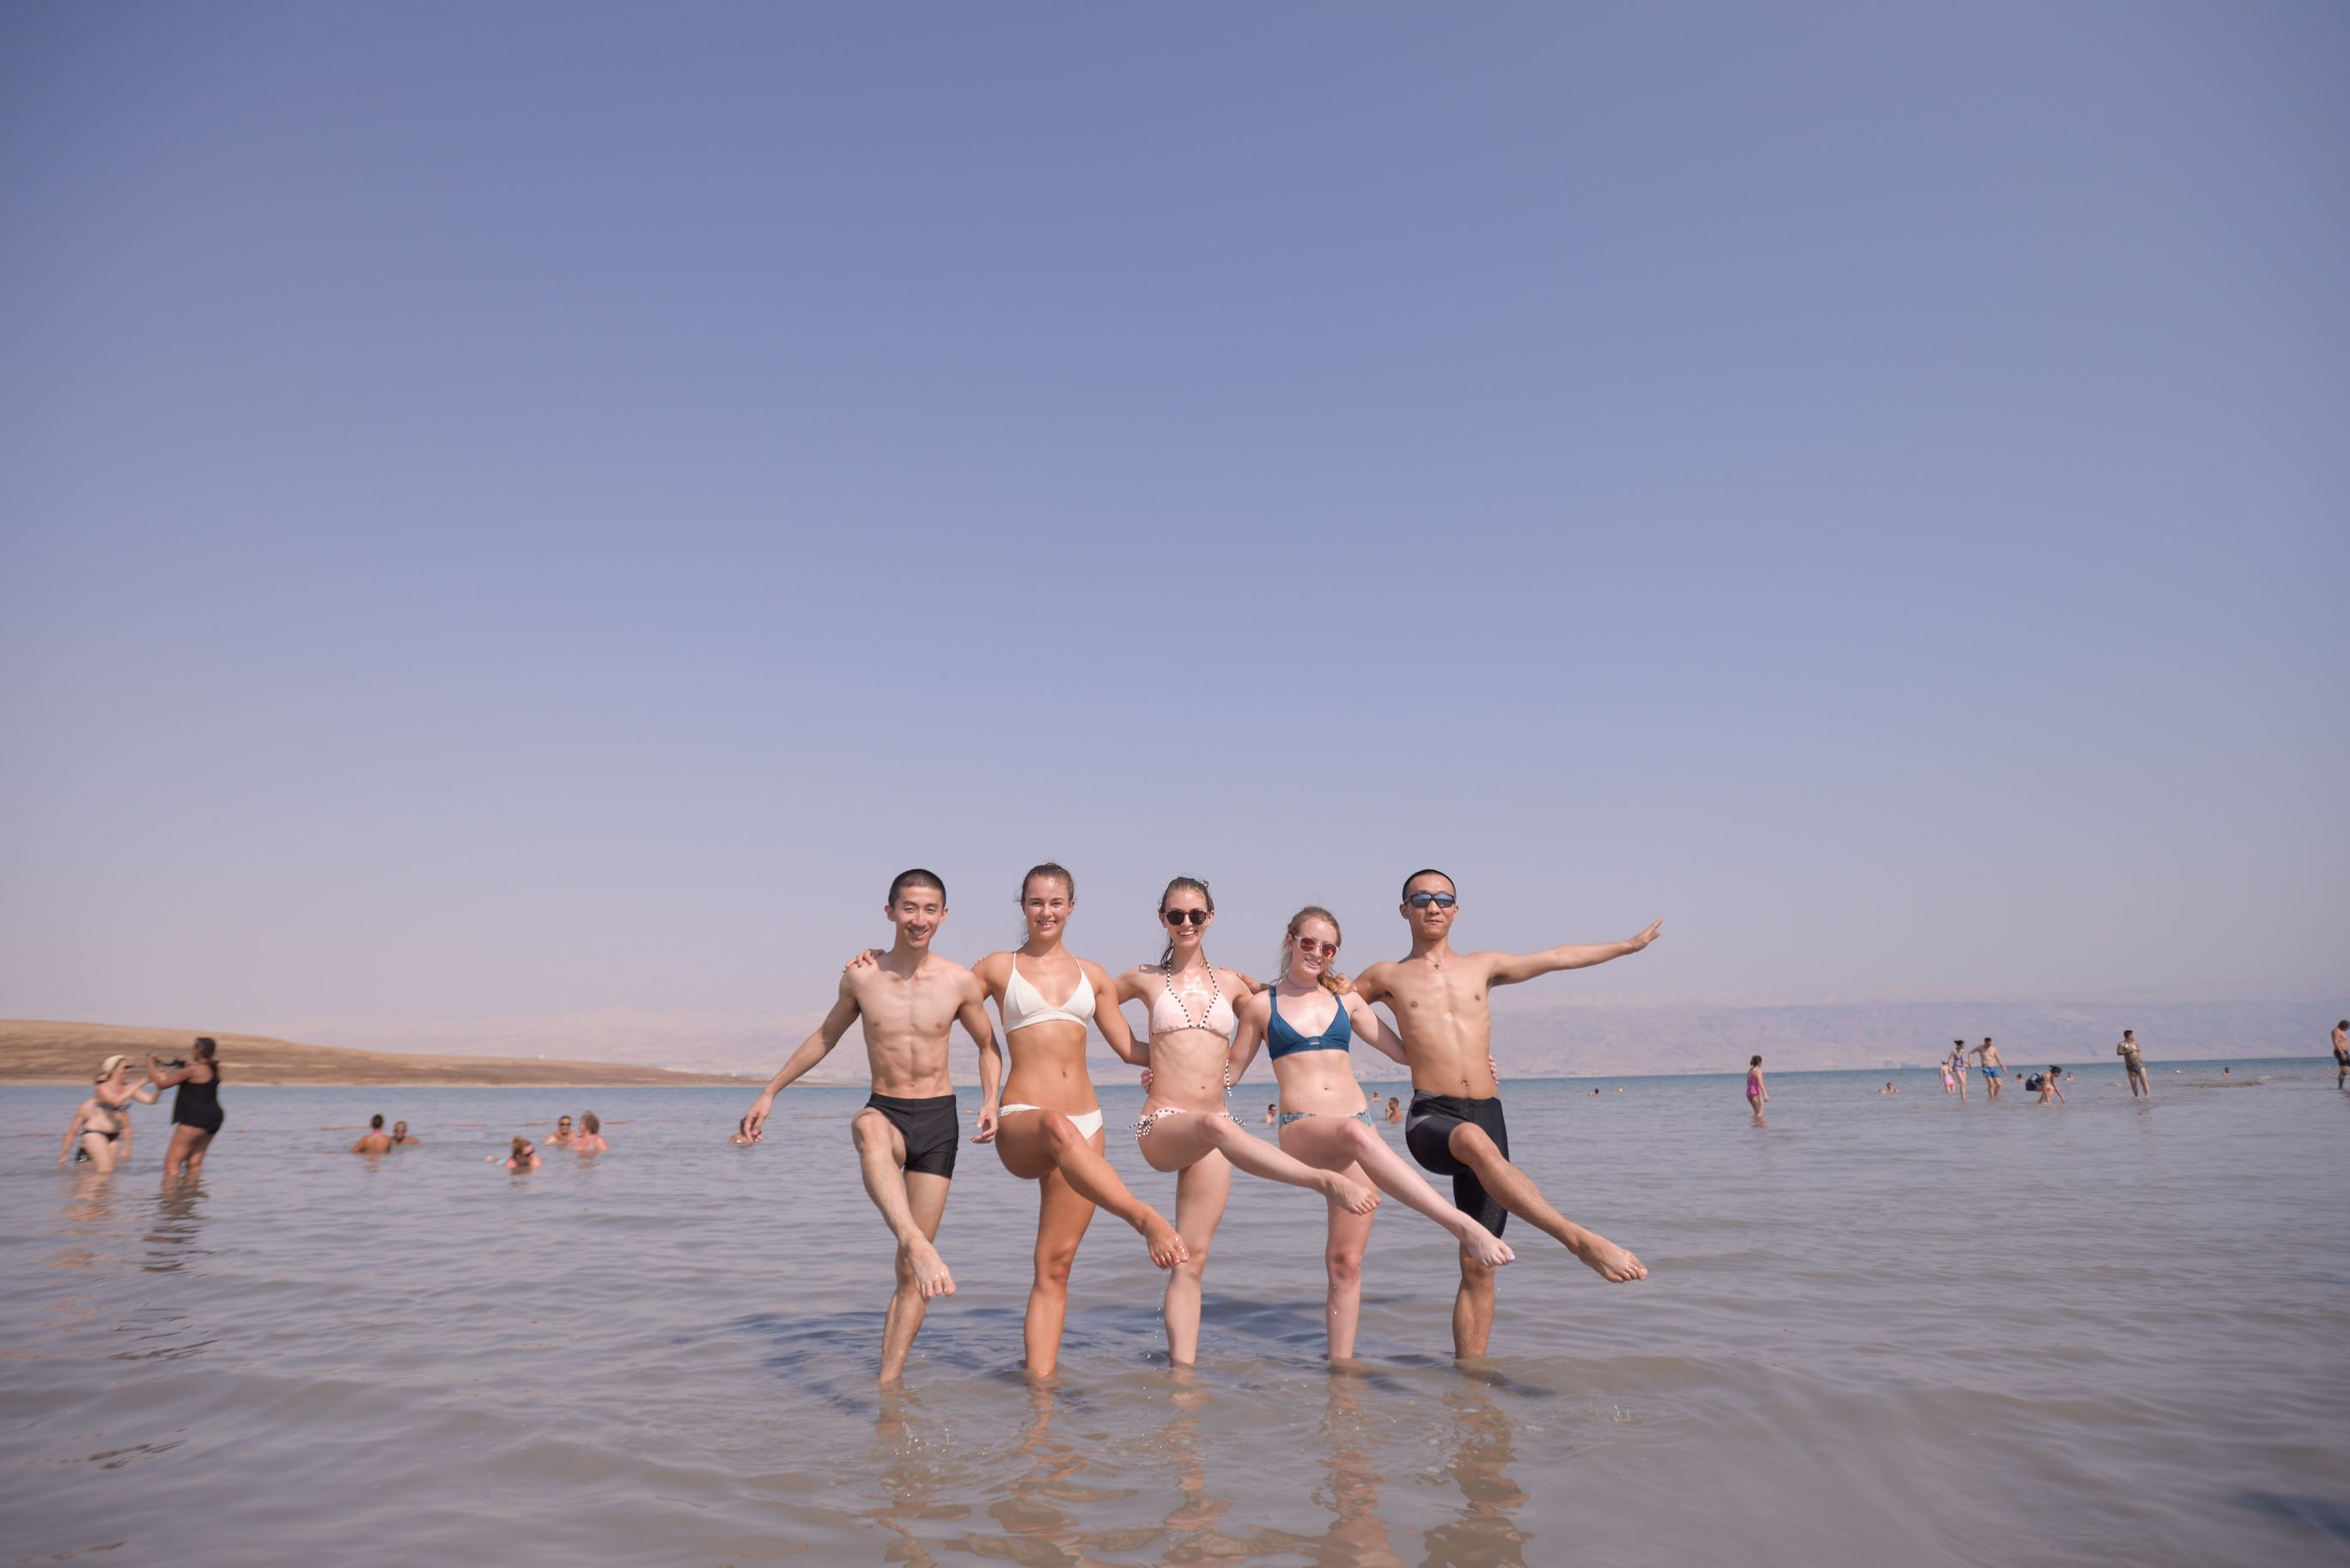 Visit-The-Dead-Sea-The-Lowest-Place-on-Earth